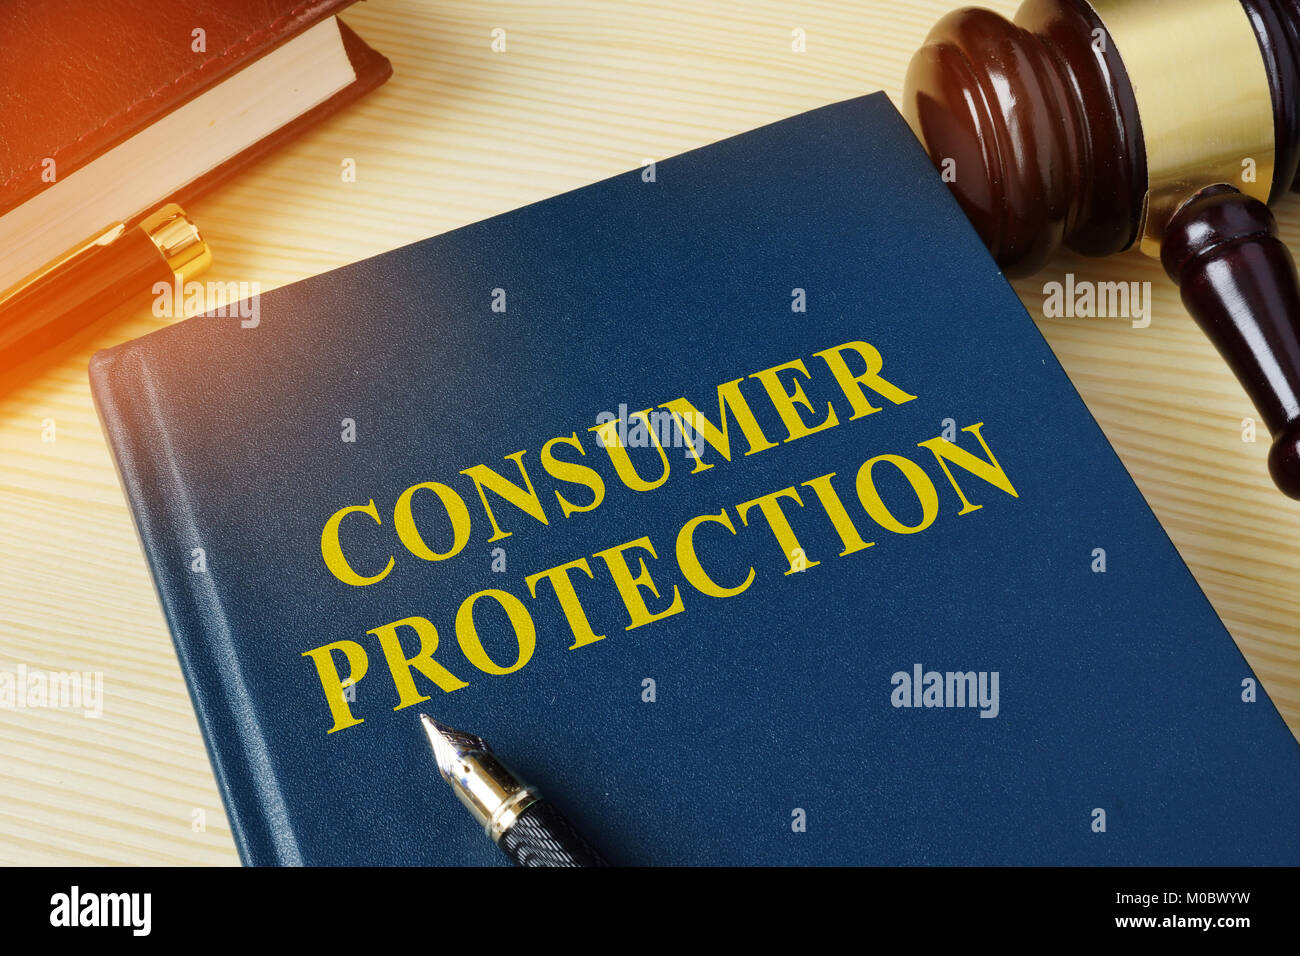 Book about Consumer Protection and gavel in a court. - Stock Image